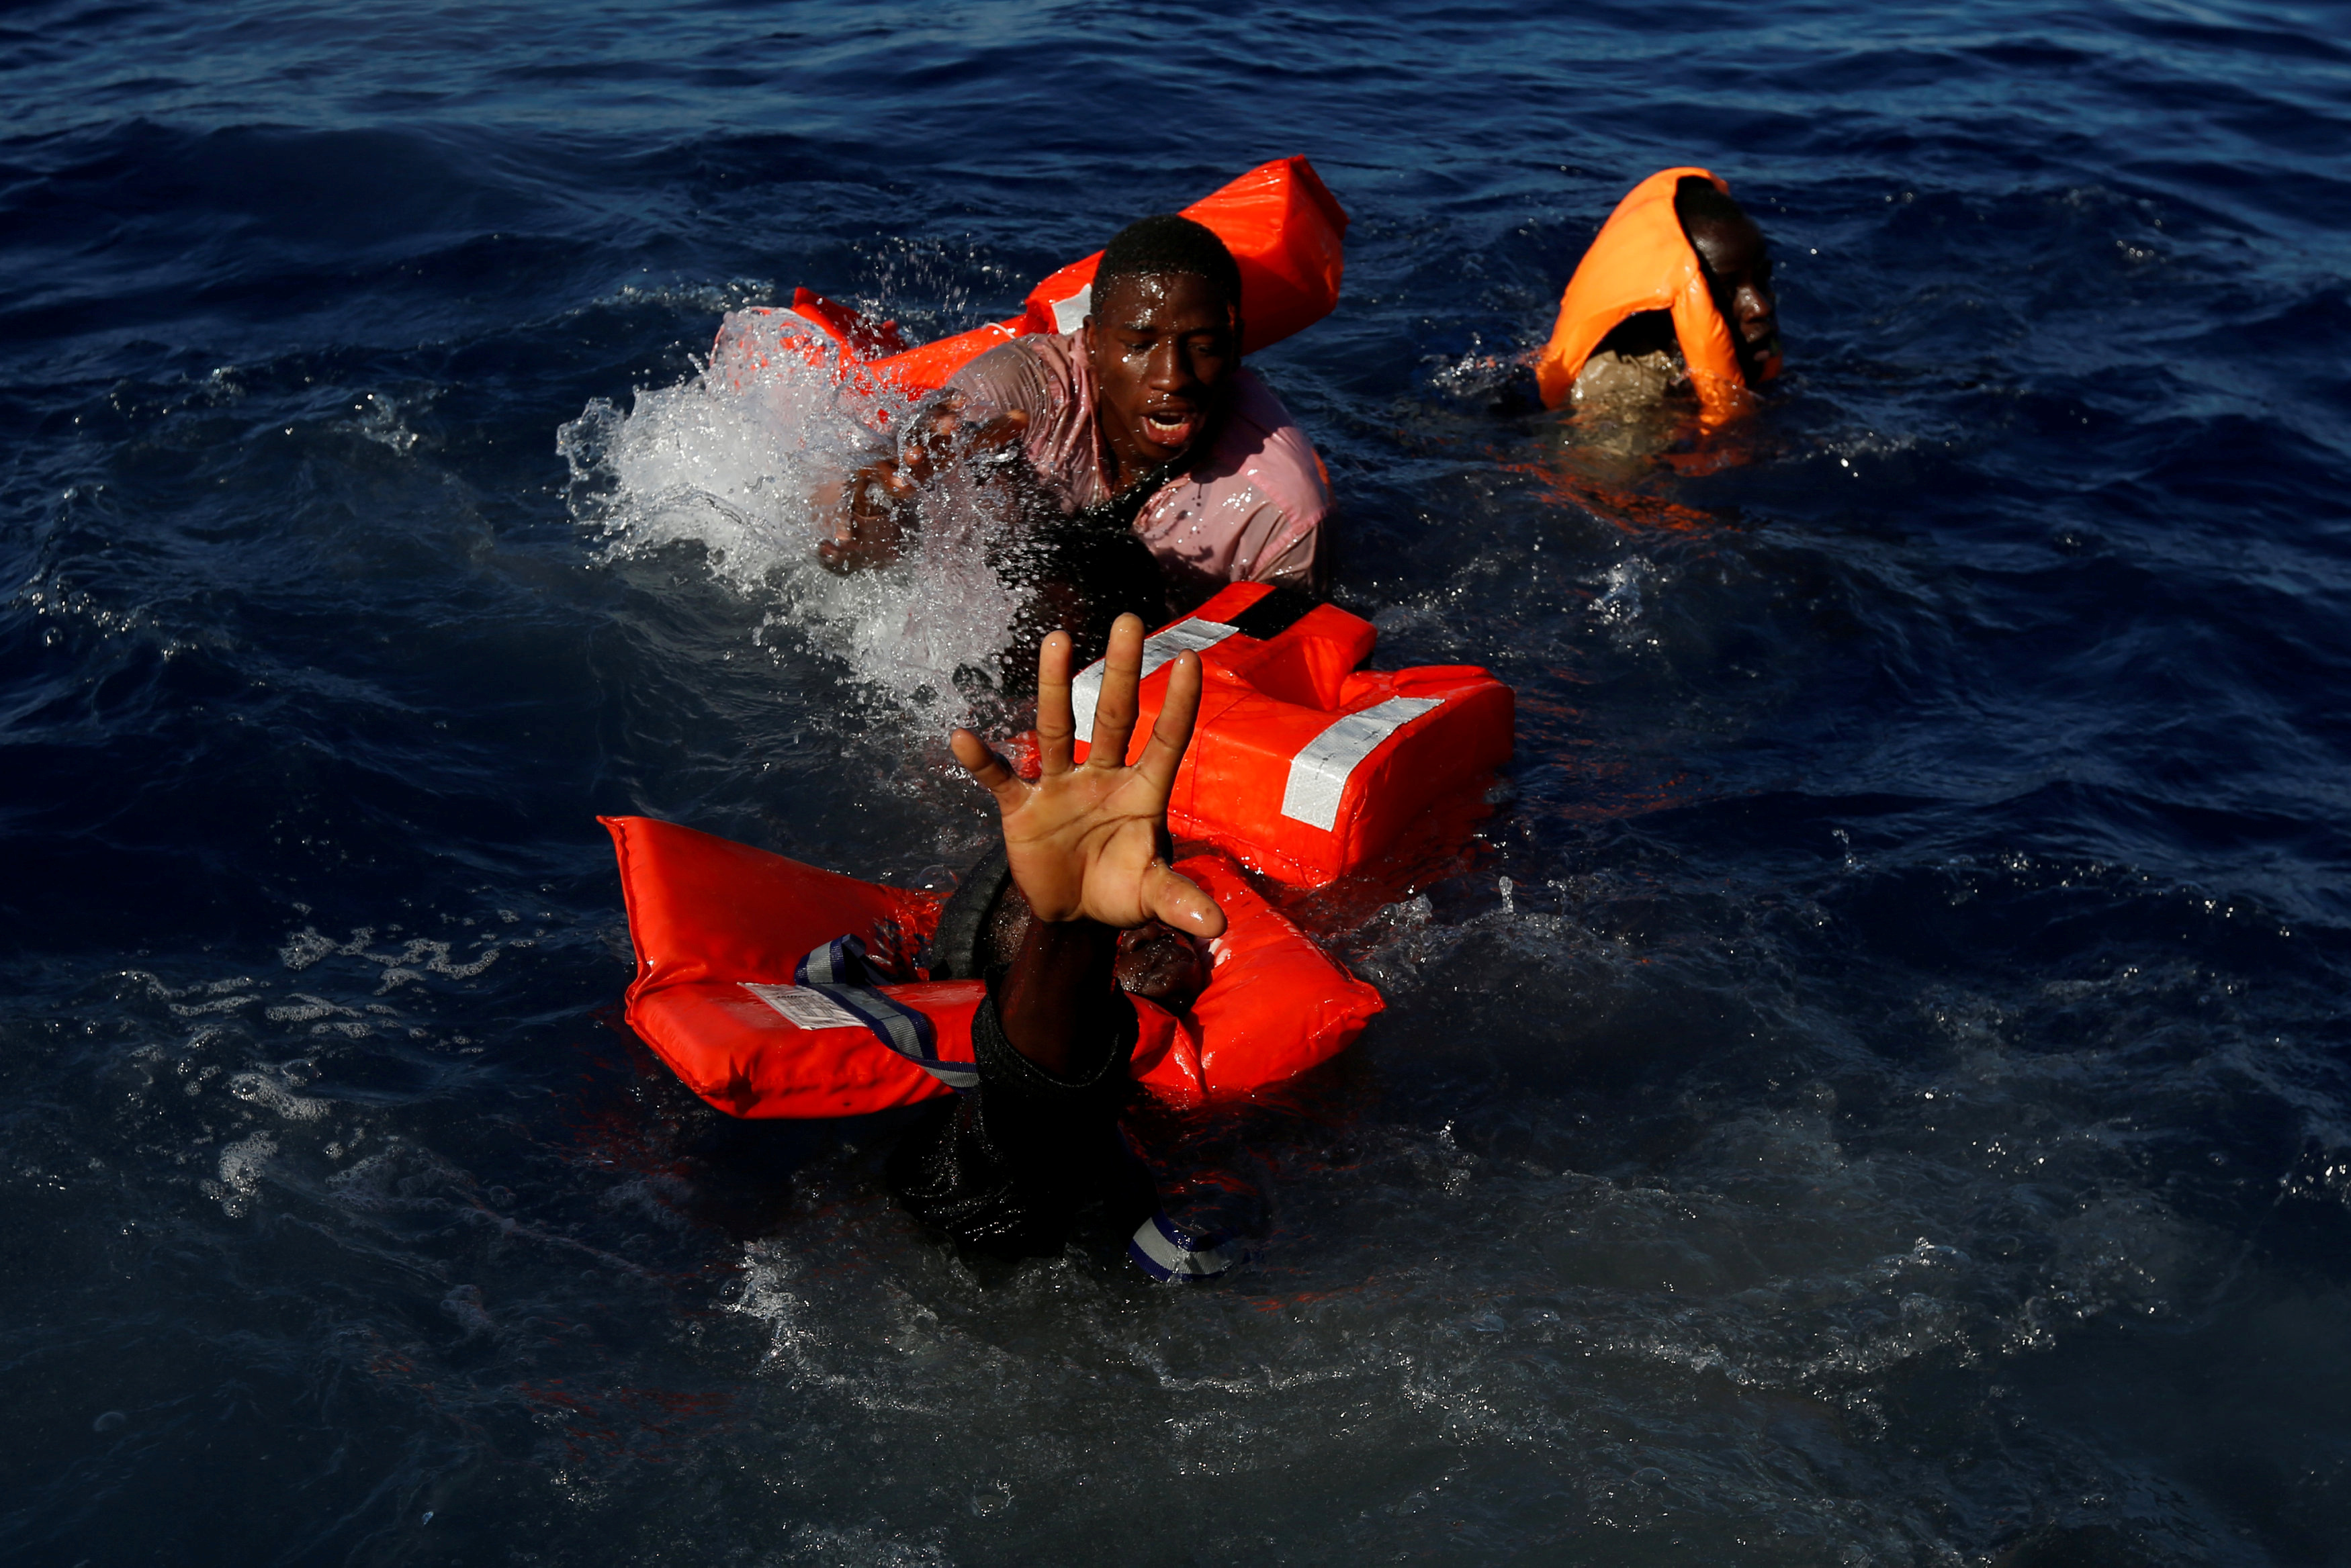 "MEDITERRANEAN SEA 2017-04-17 Migrants try to stay afloat after falling off their rubber dinghy during a rescue operation by the Malta-based NGO Migrant Offshore Aid Station (MOAS) ship in the central Mediterranean in international waters some 15 nautical miles off the coast of Zawiya in Libya, April 14, 2017. All 134 sub-Saharan migrants survived and were rescued by MOAS. REUTERS/Darrin Zammit Lupi TPX IMAGES OF THE DAY SEARCH ""MOAS RESCUE"" FOR THIS STORY. SEARCH ""WIDER IMAGE"" FOR ALL STORIES. Photo: / REUTERS / TT / kod 72000"